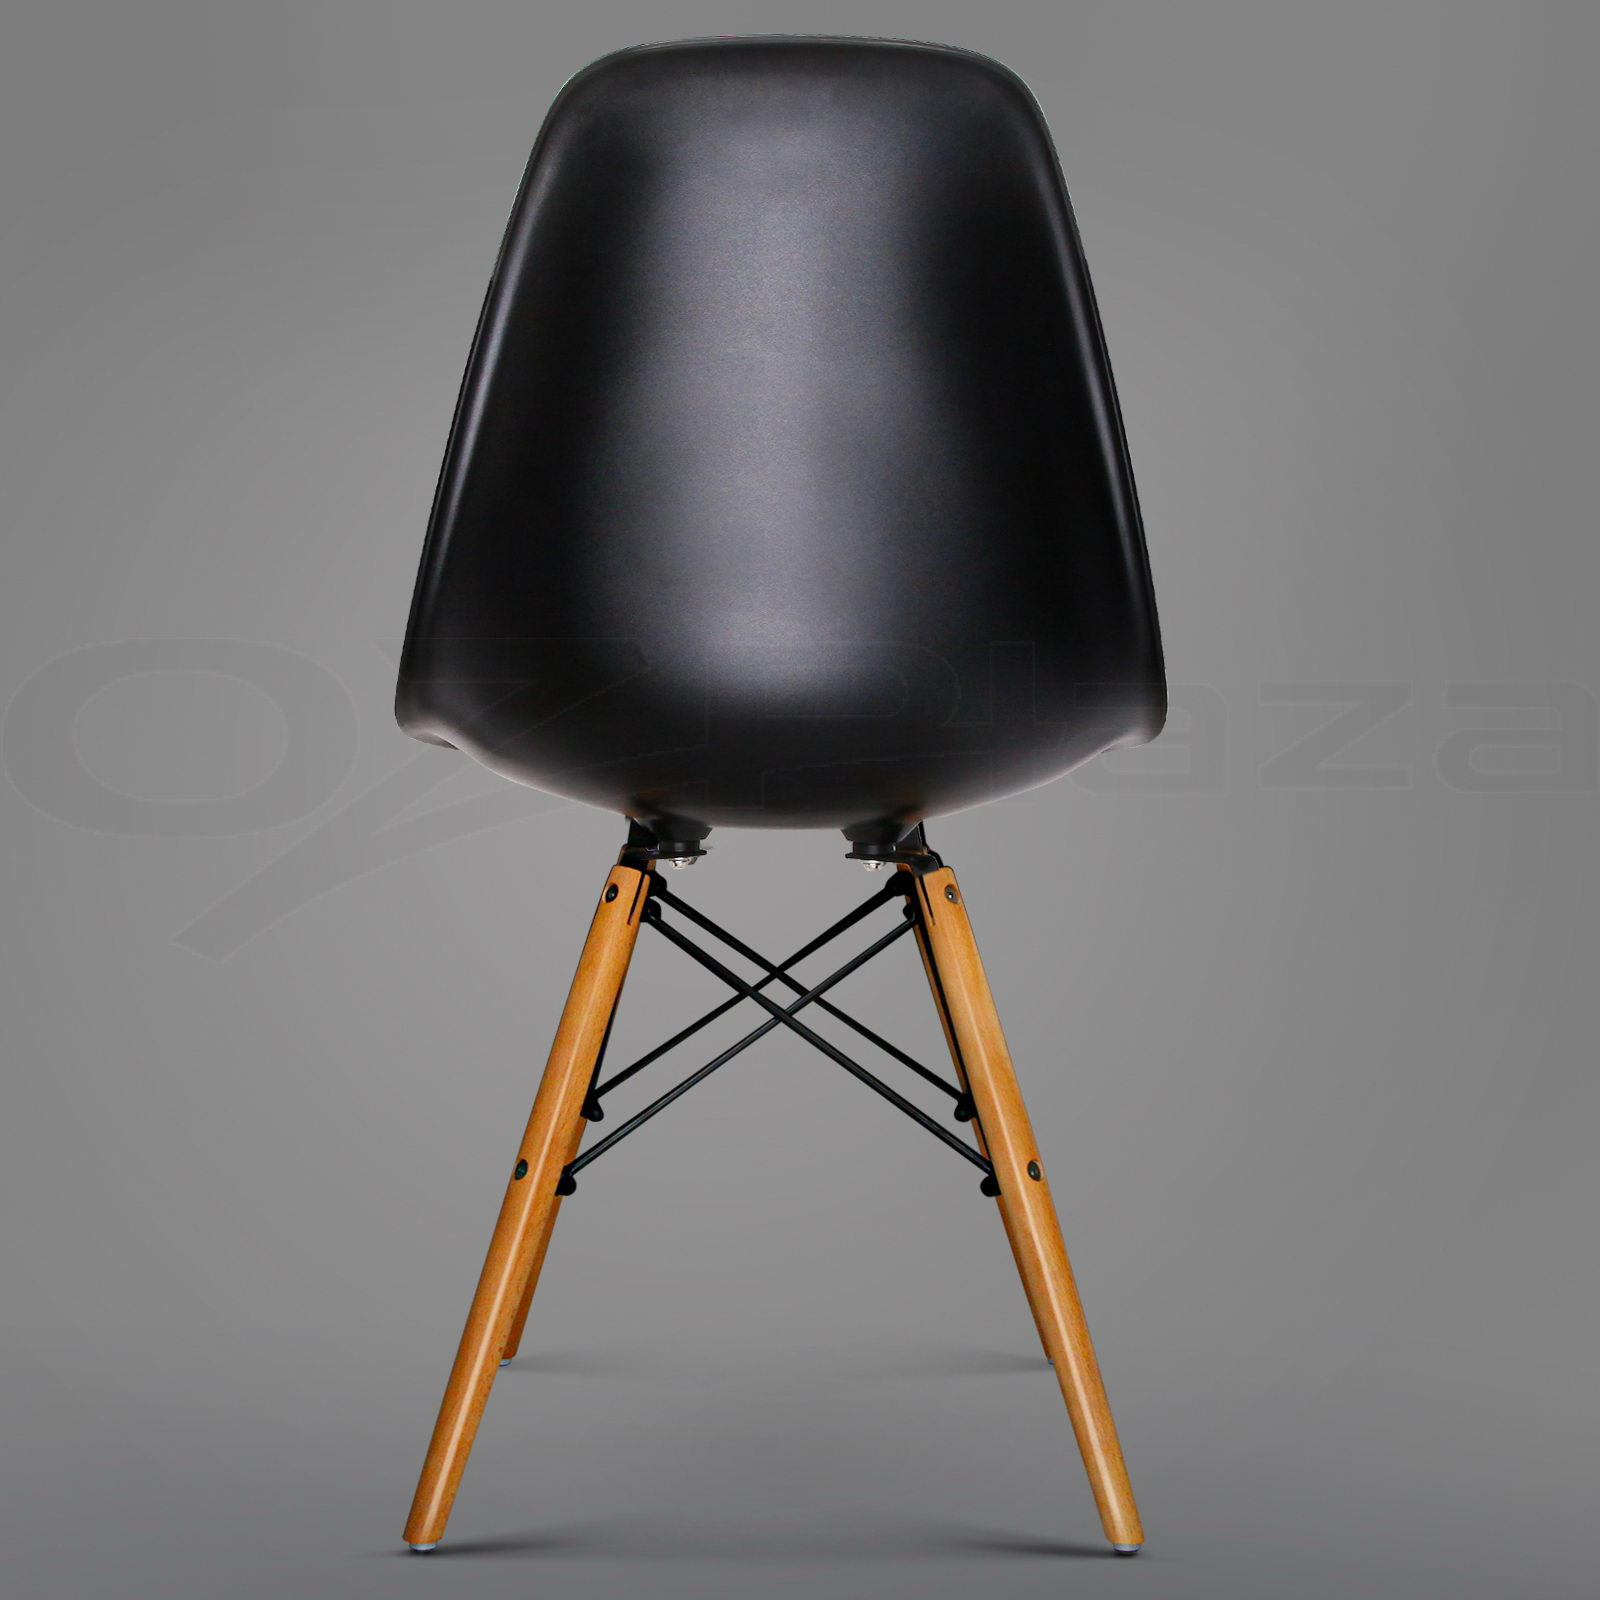 8 x retro replica eames dsw dining chair daw armchair for Eames daw reproduktion